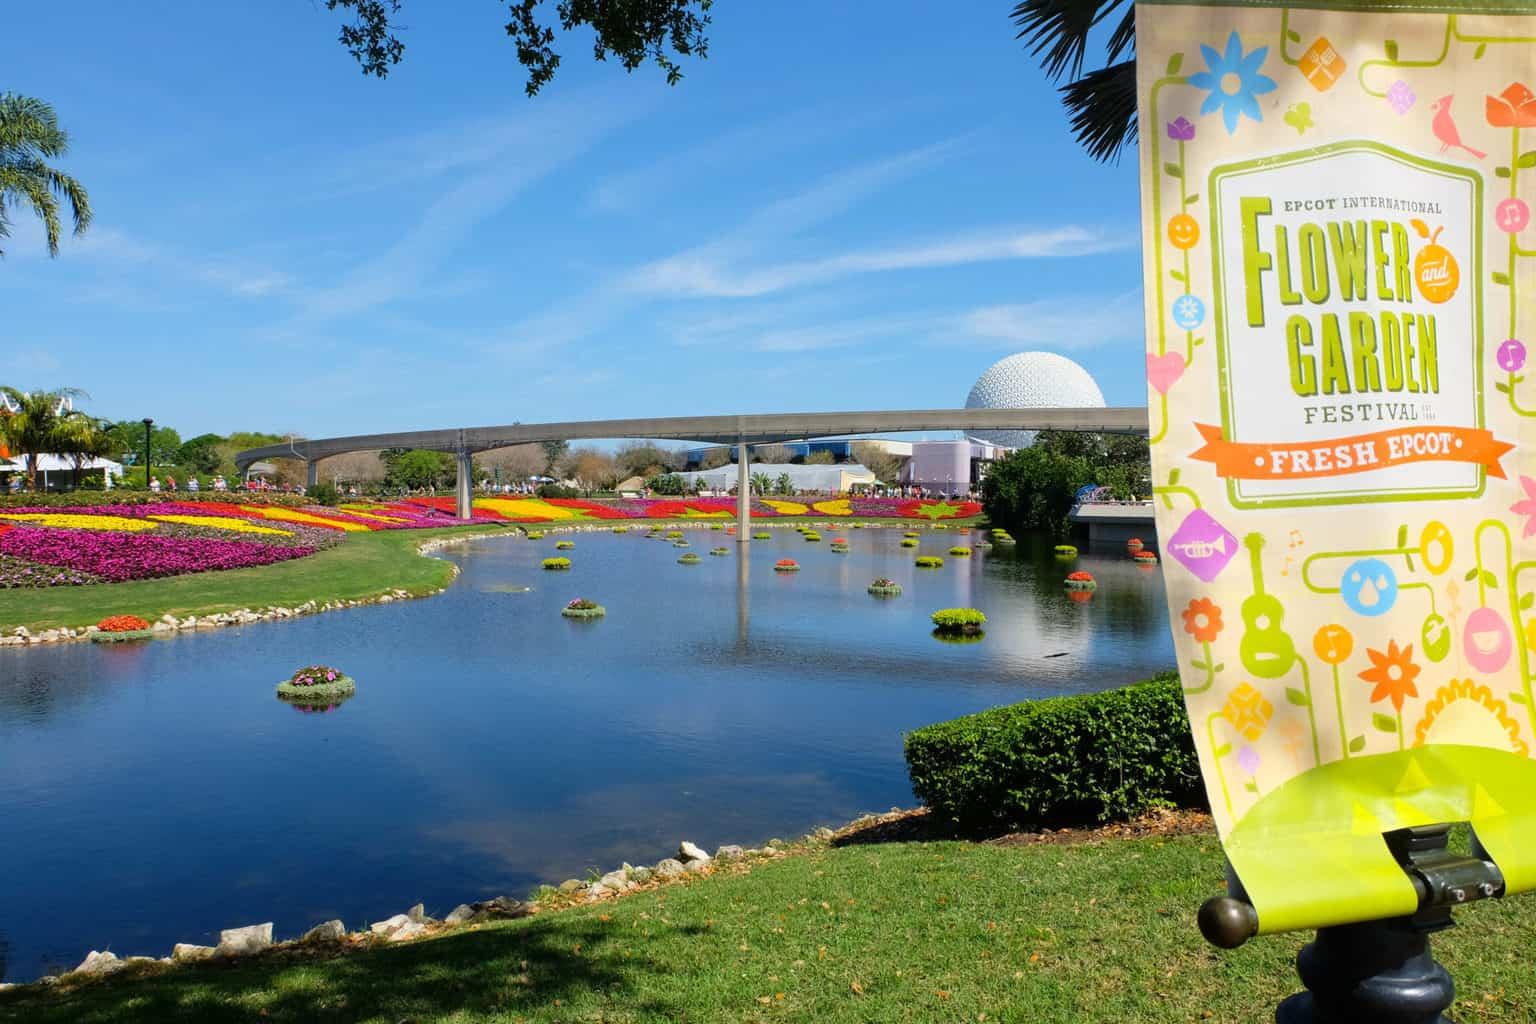 epcot flower and garden festival 15 foods to try (and 5 you can skip